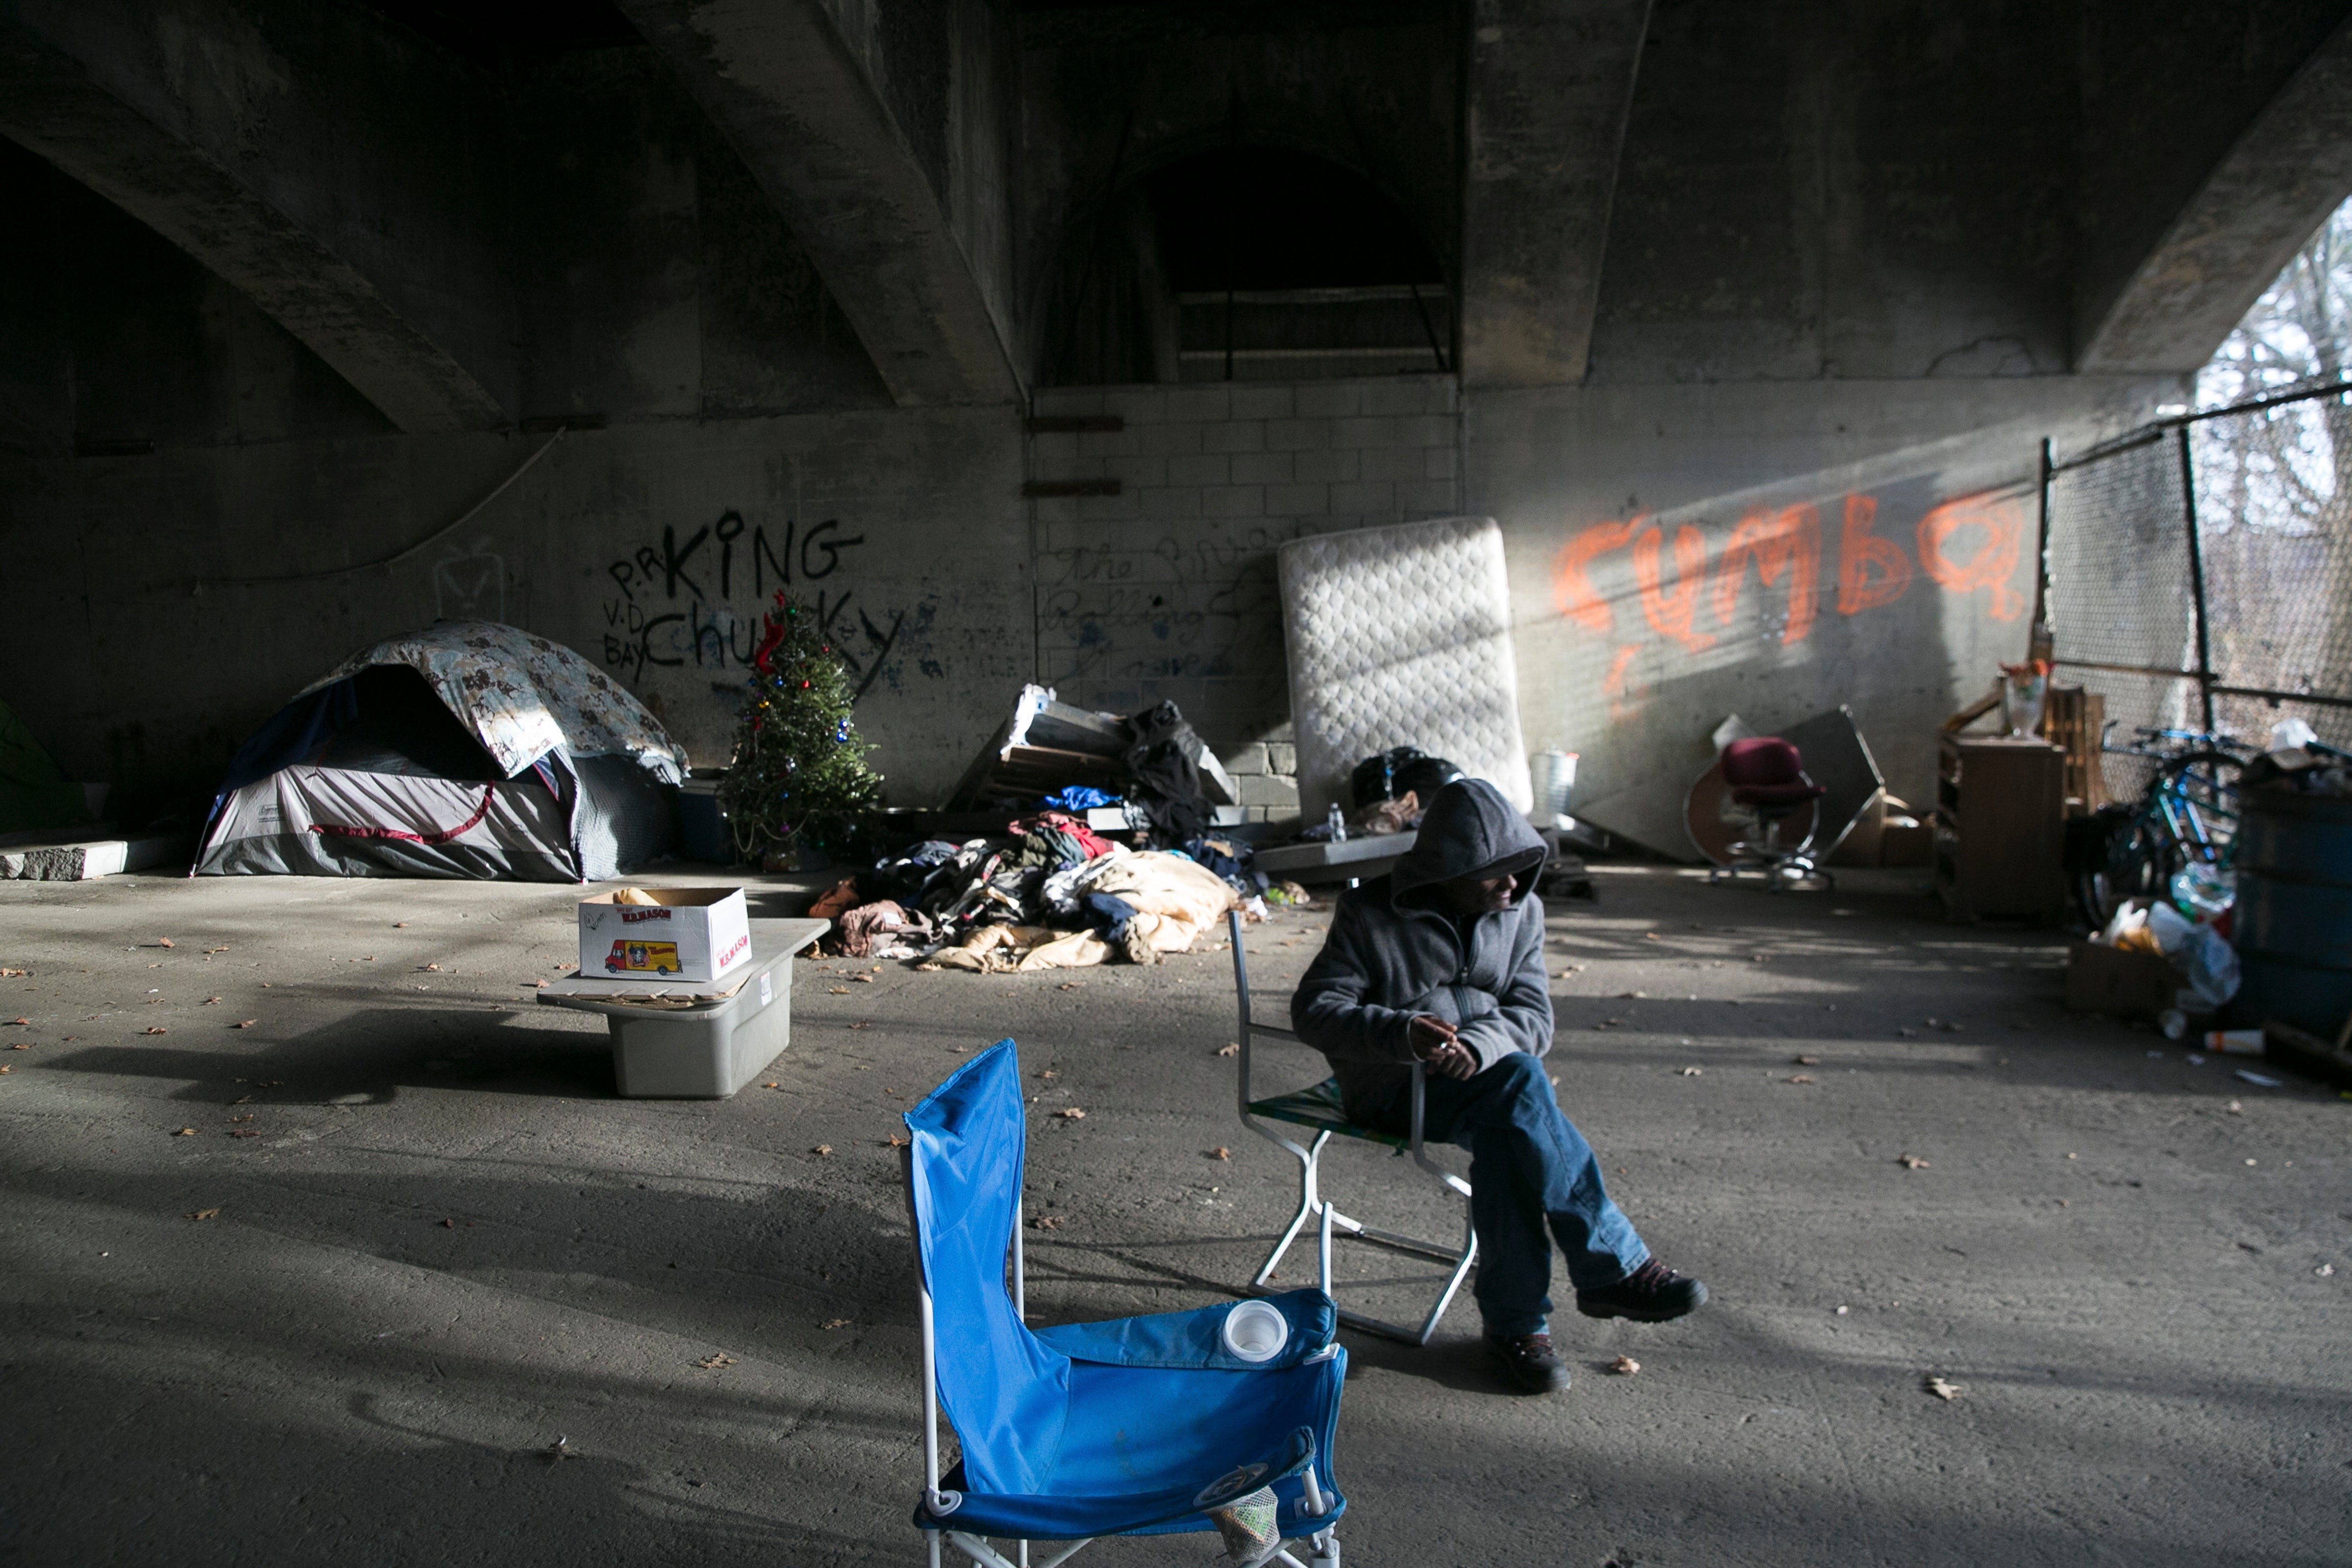 An addict at a homeless encampment in Lawrence.